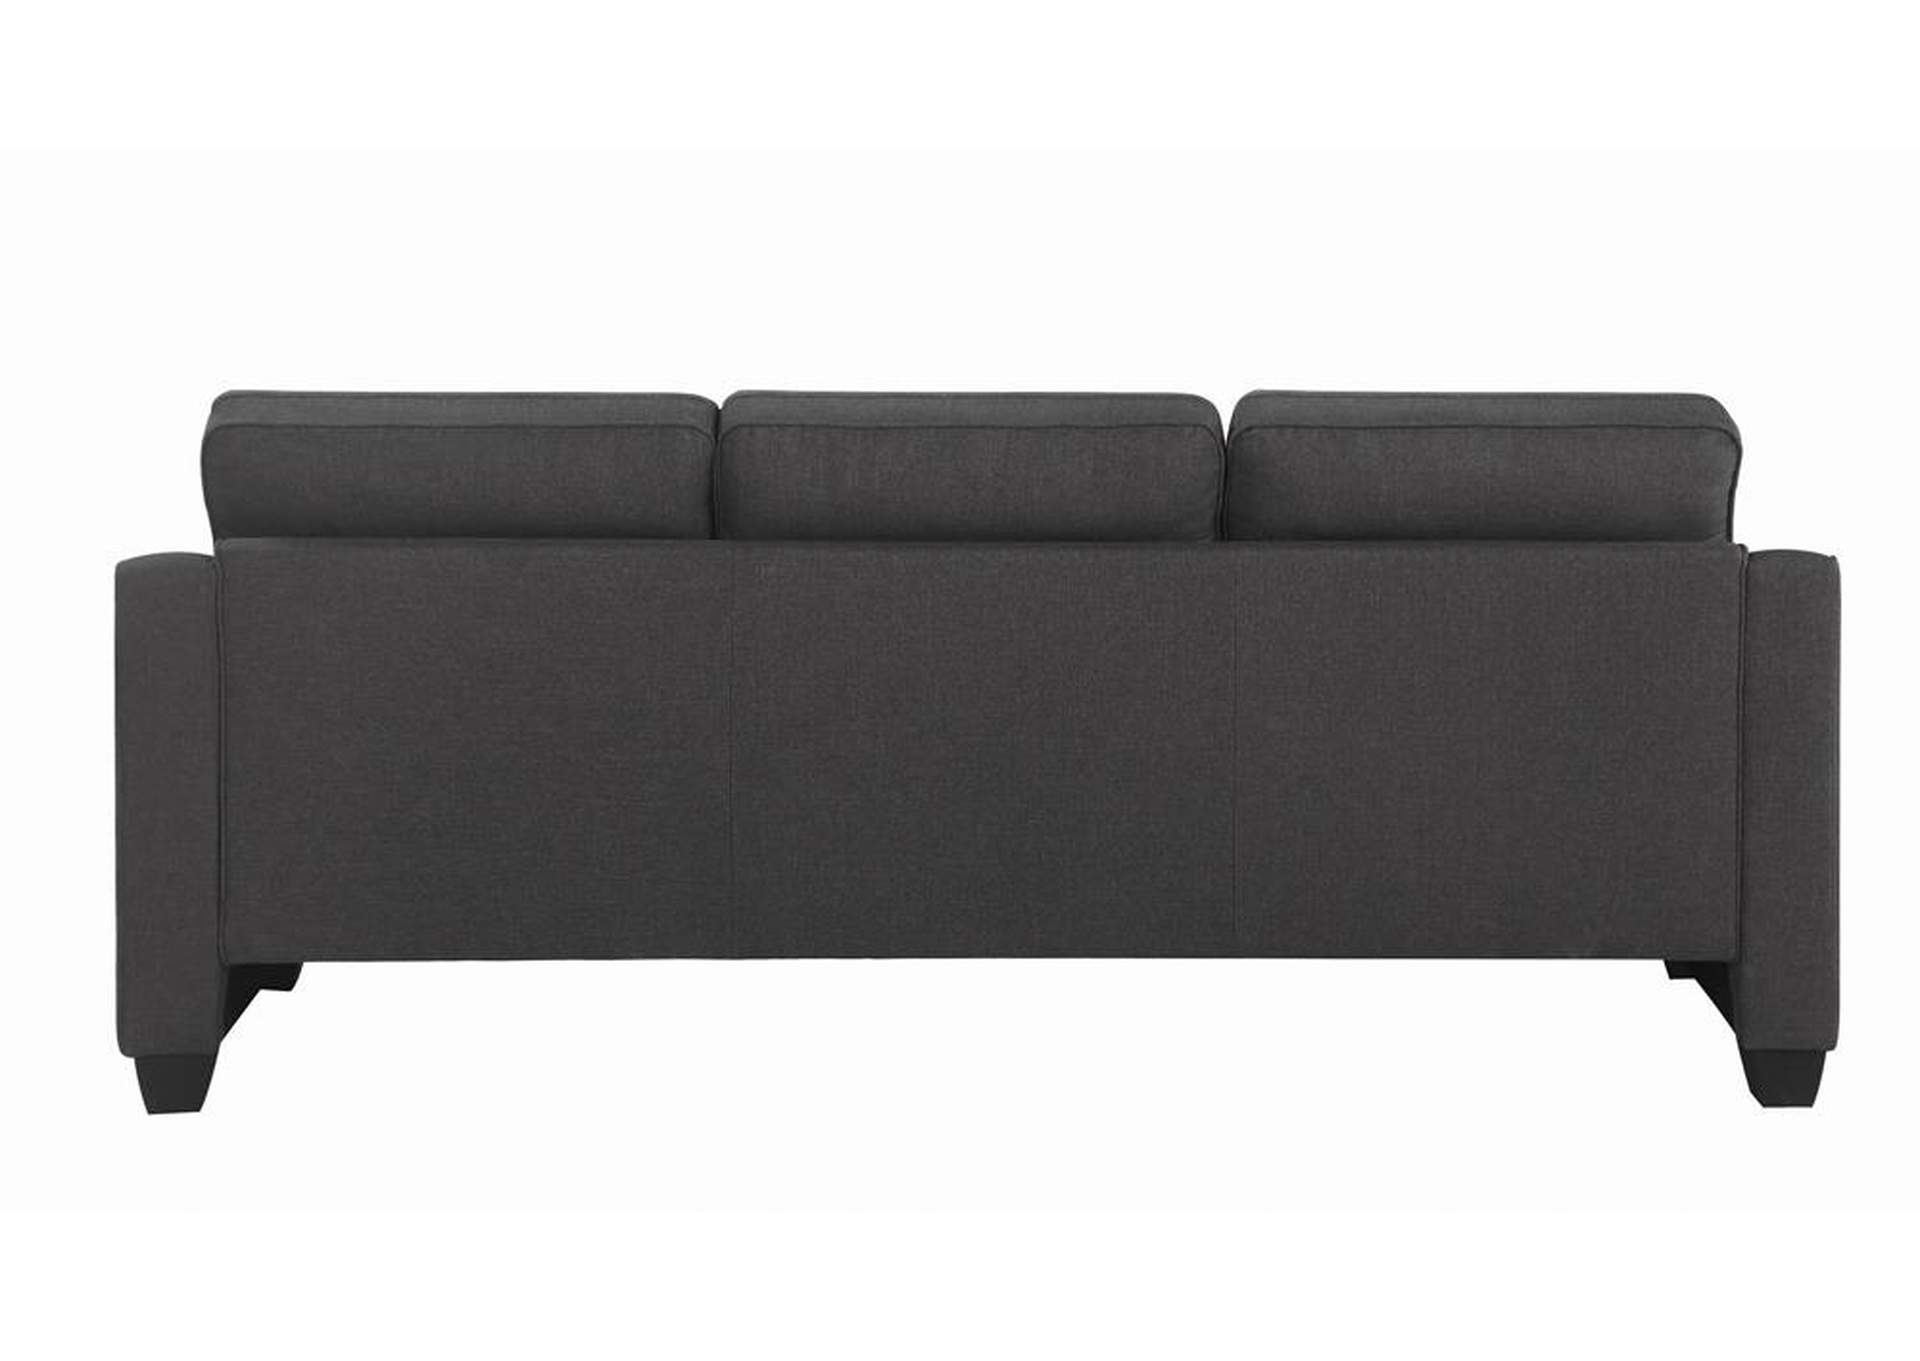 Dark Grey Reversible Sectional,Coaster Furniture